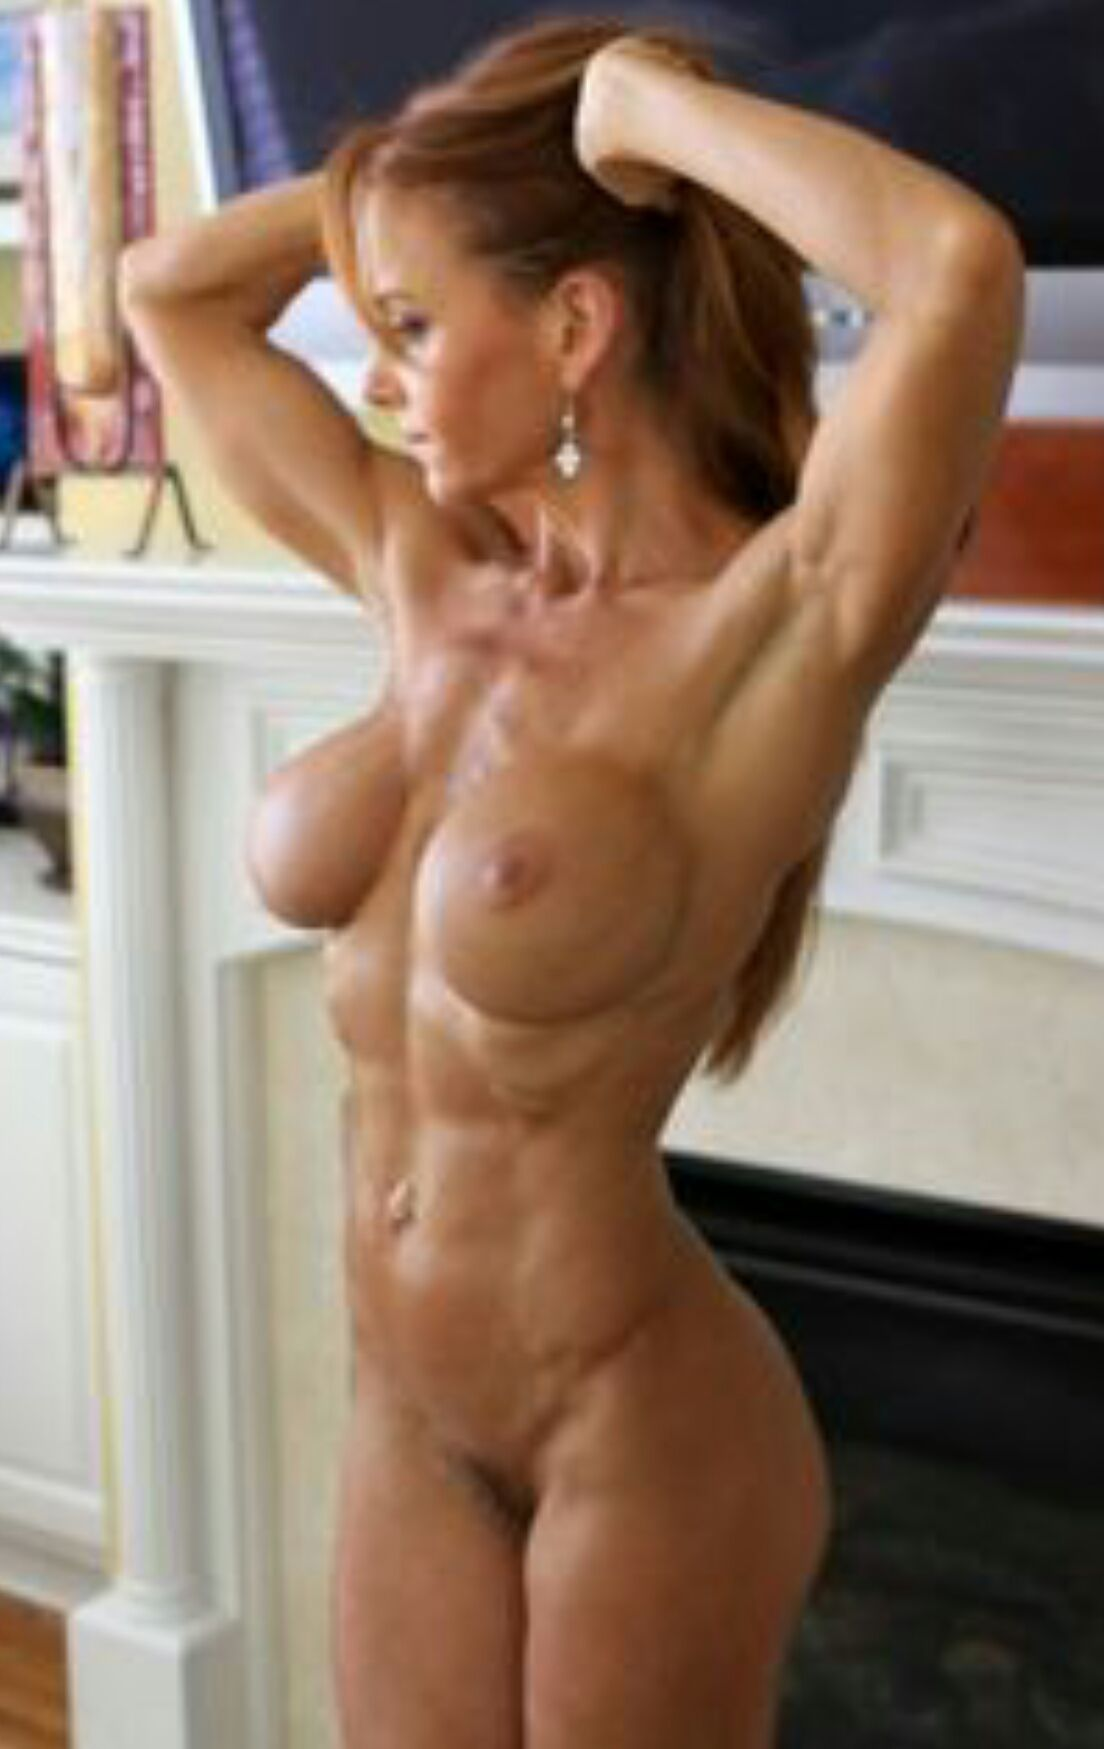 Fit Nude Girls - Naked girls with great bodies Imagination ...